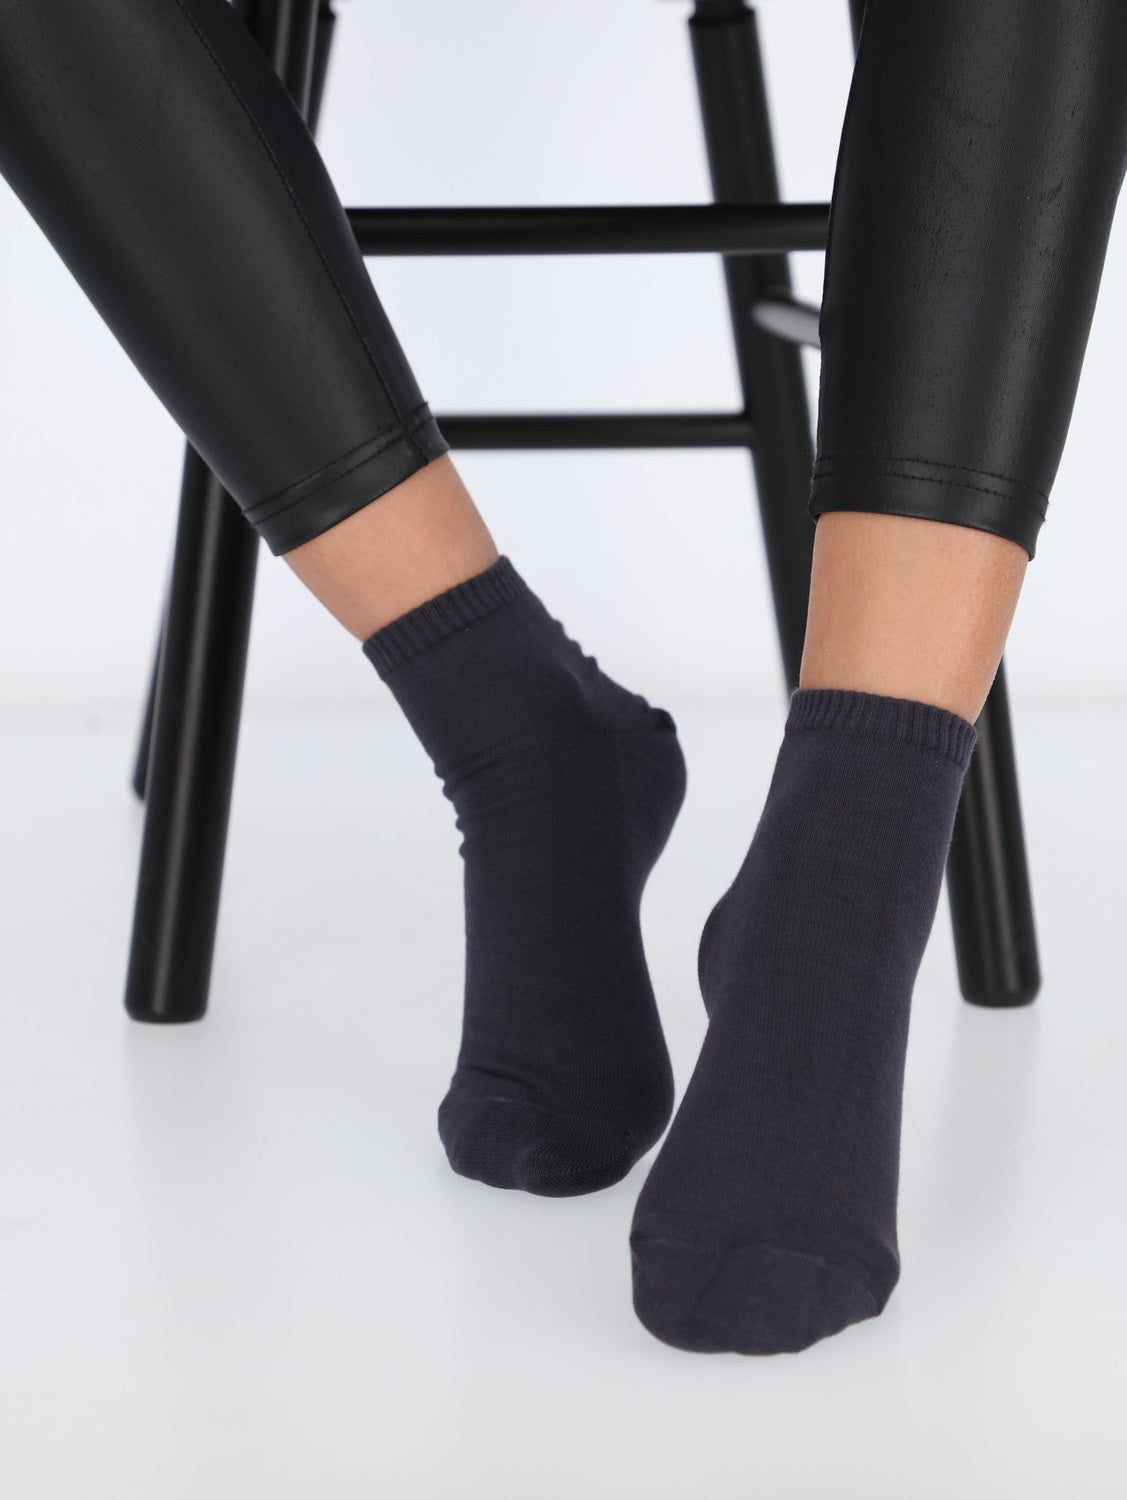 Low Cut Comfy Socks